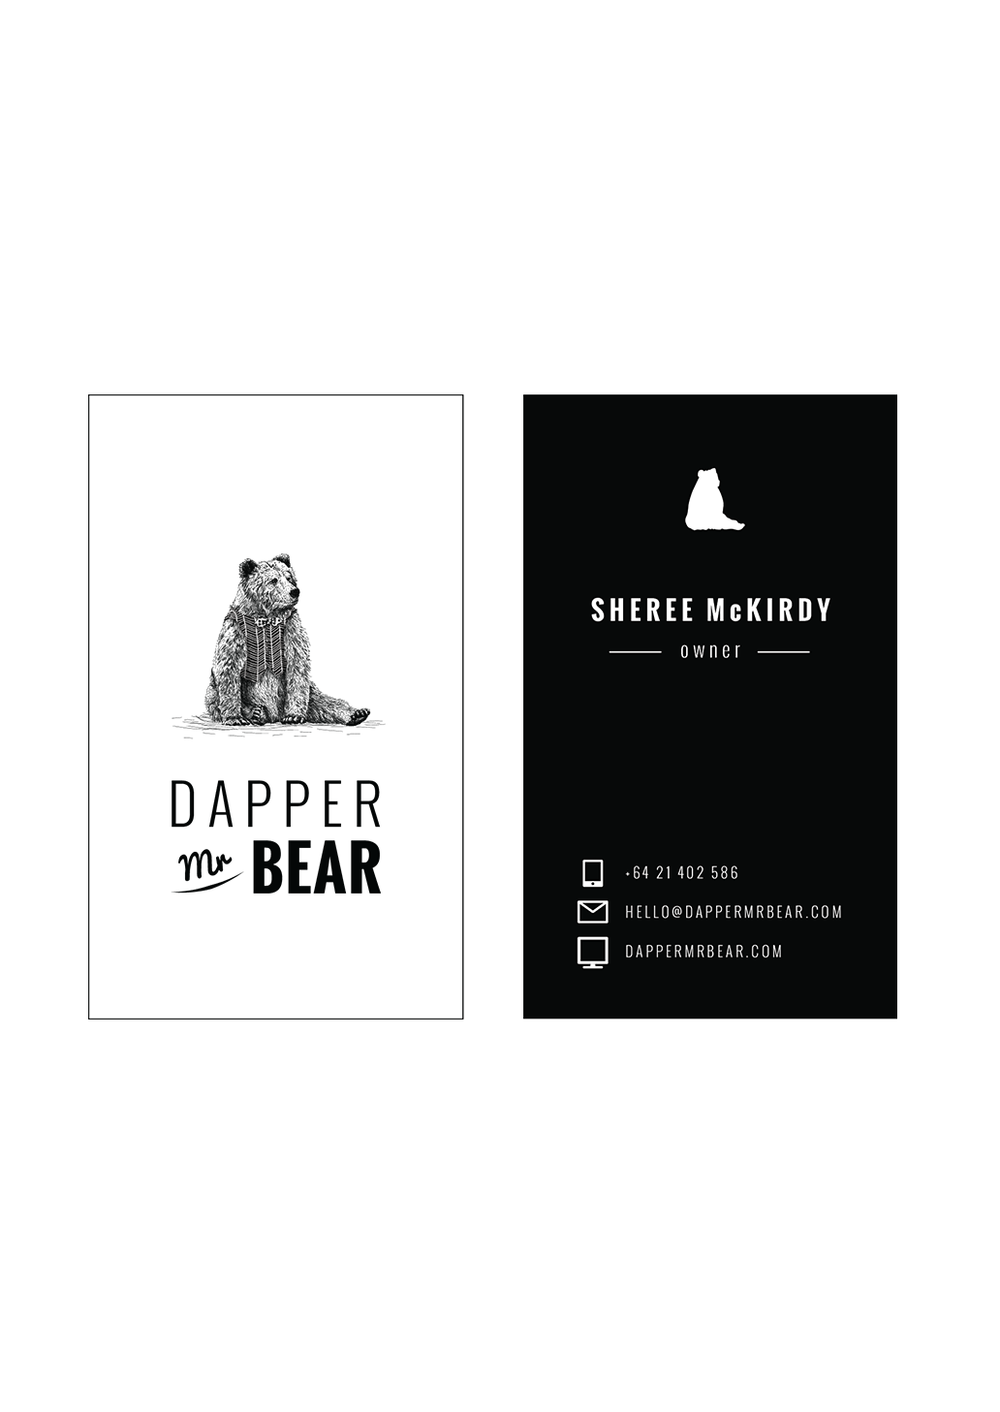 Dapperbearbusinesscardsweb.png